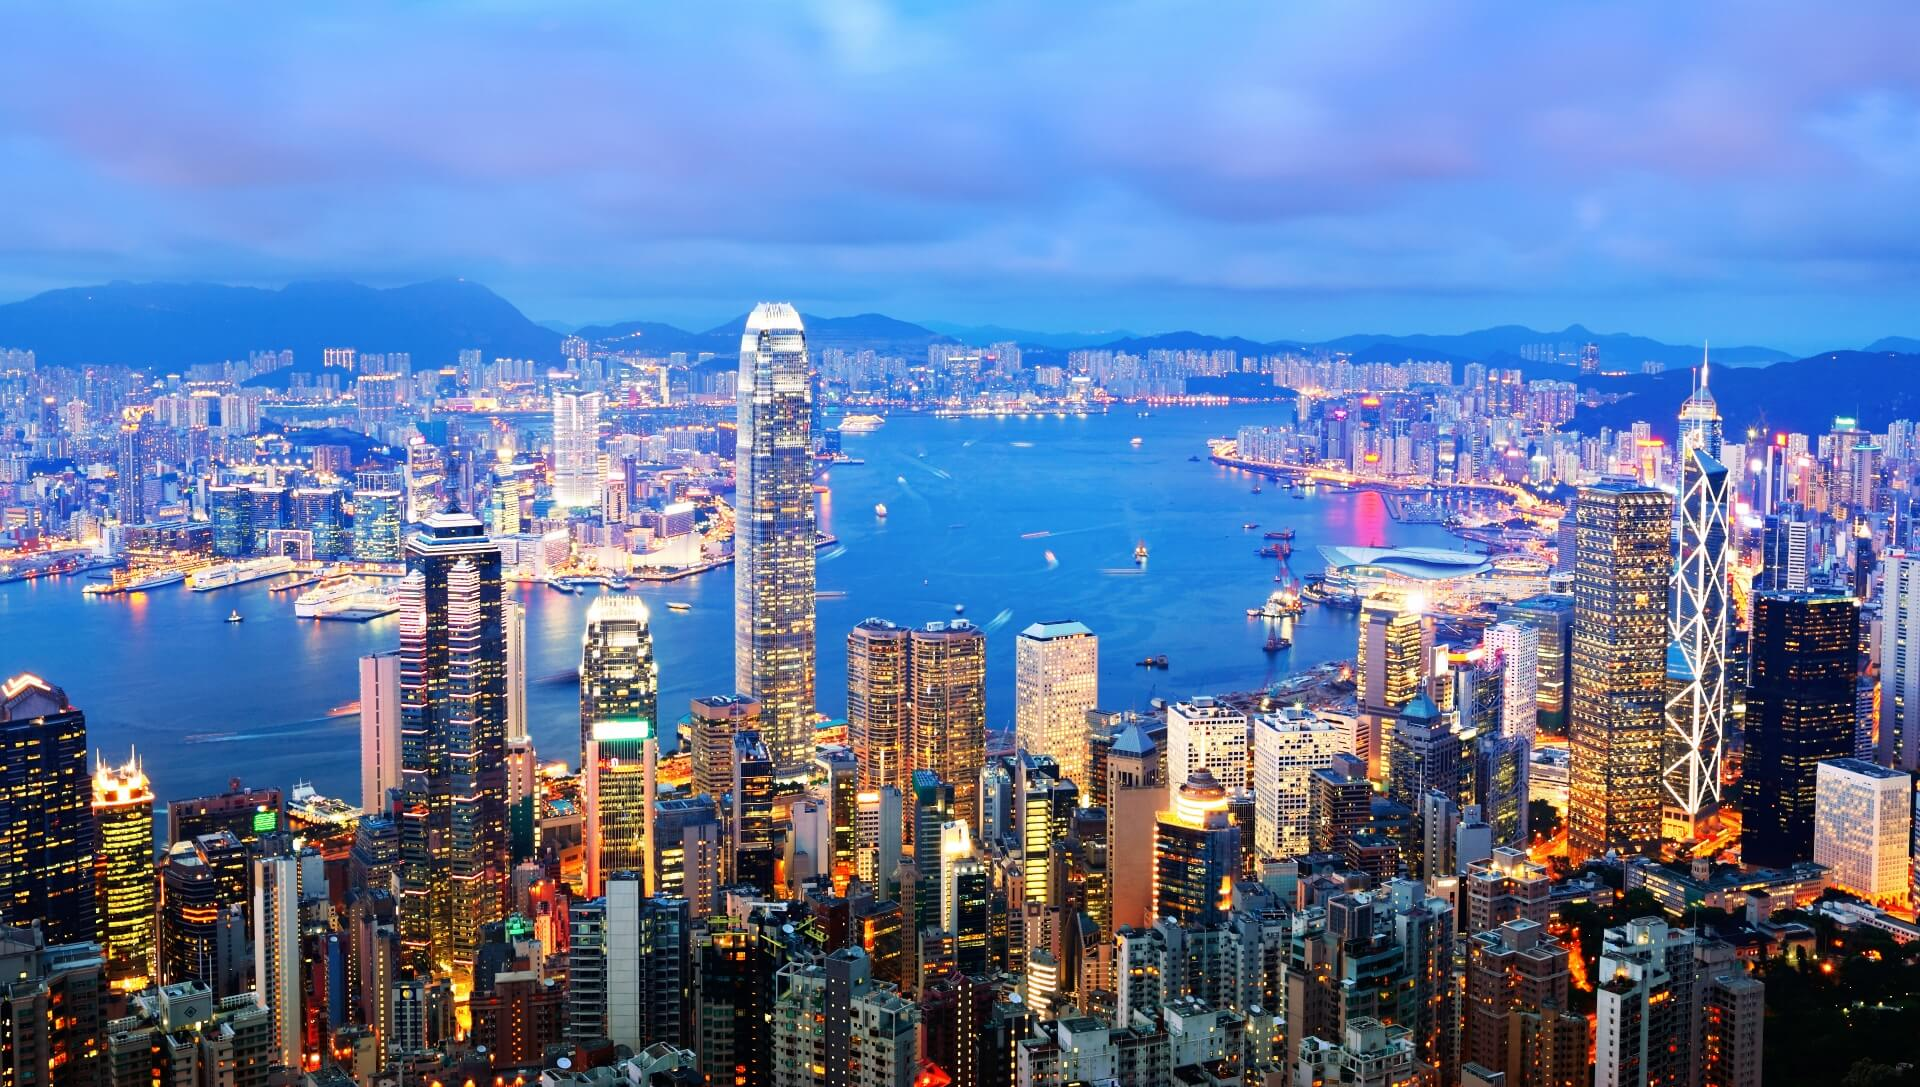 HK blockchain community open to more regulatory clarity, industry survey finds